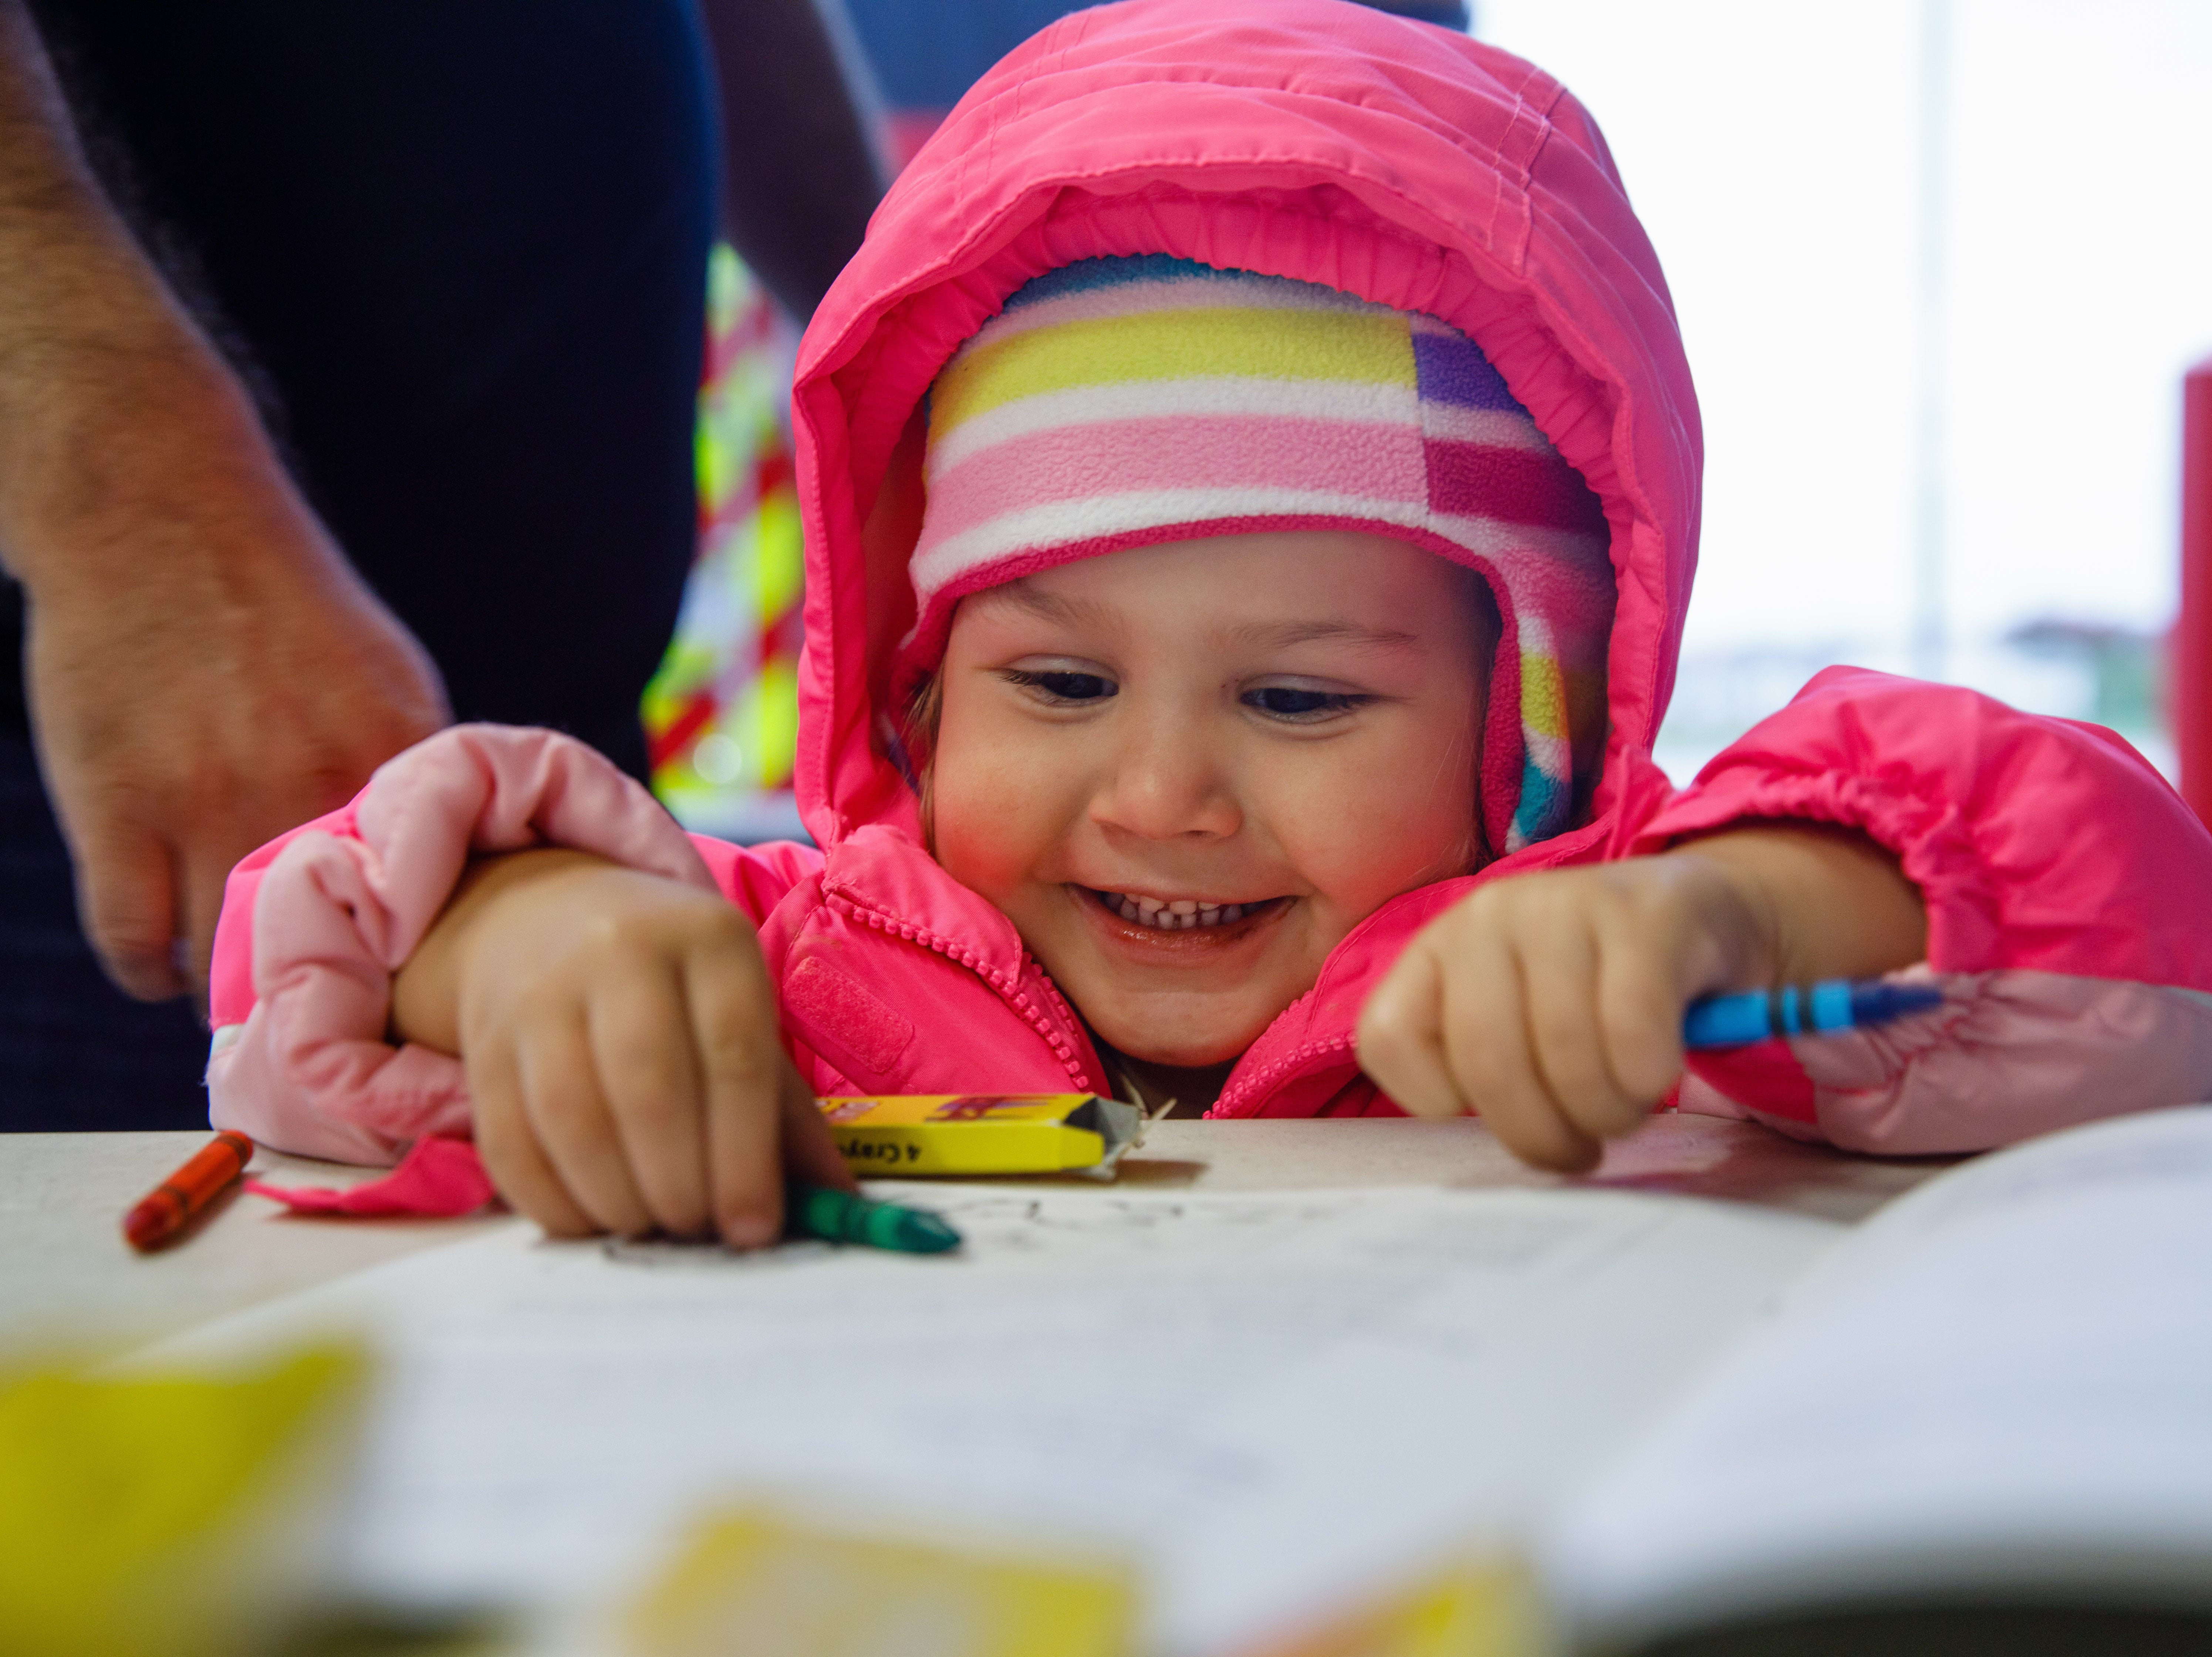 Aubree Albizures, 2, opens a coloring book Wednesday, Oct. 10, 2018, during the Johnston-Grimes Metropolitan Fire Department's annual Fire Prevention Week Open House at the 62nd Avenue Fire Station in Johnston.